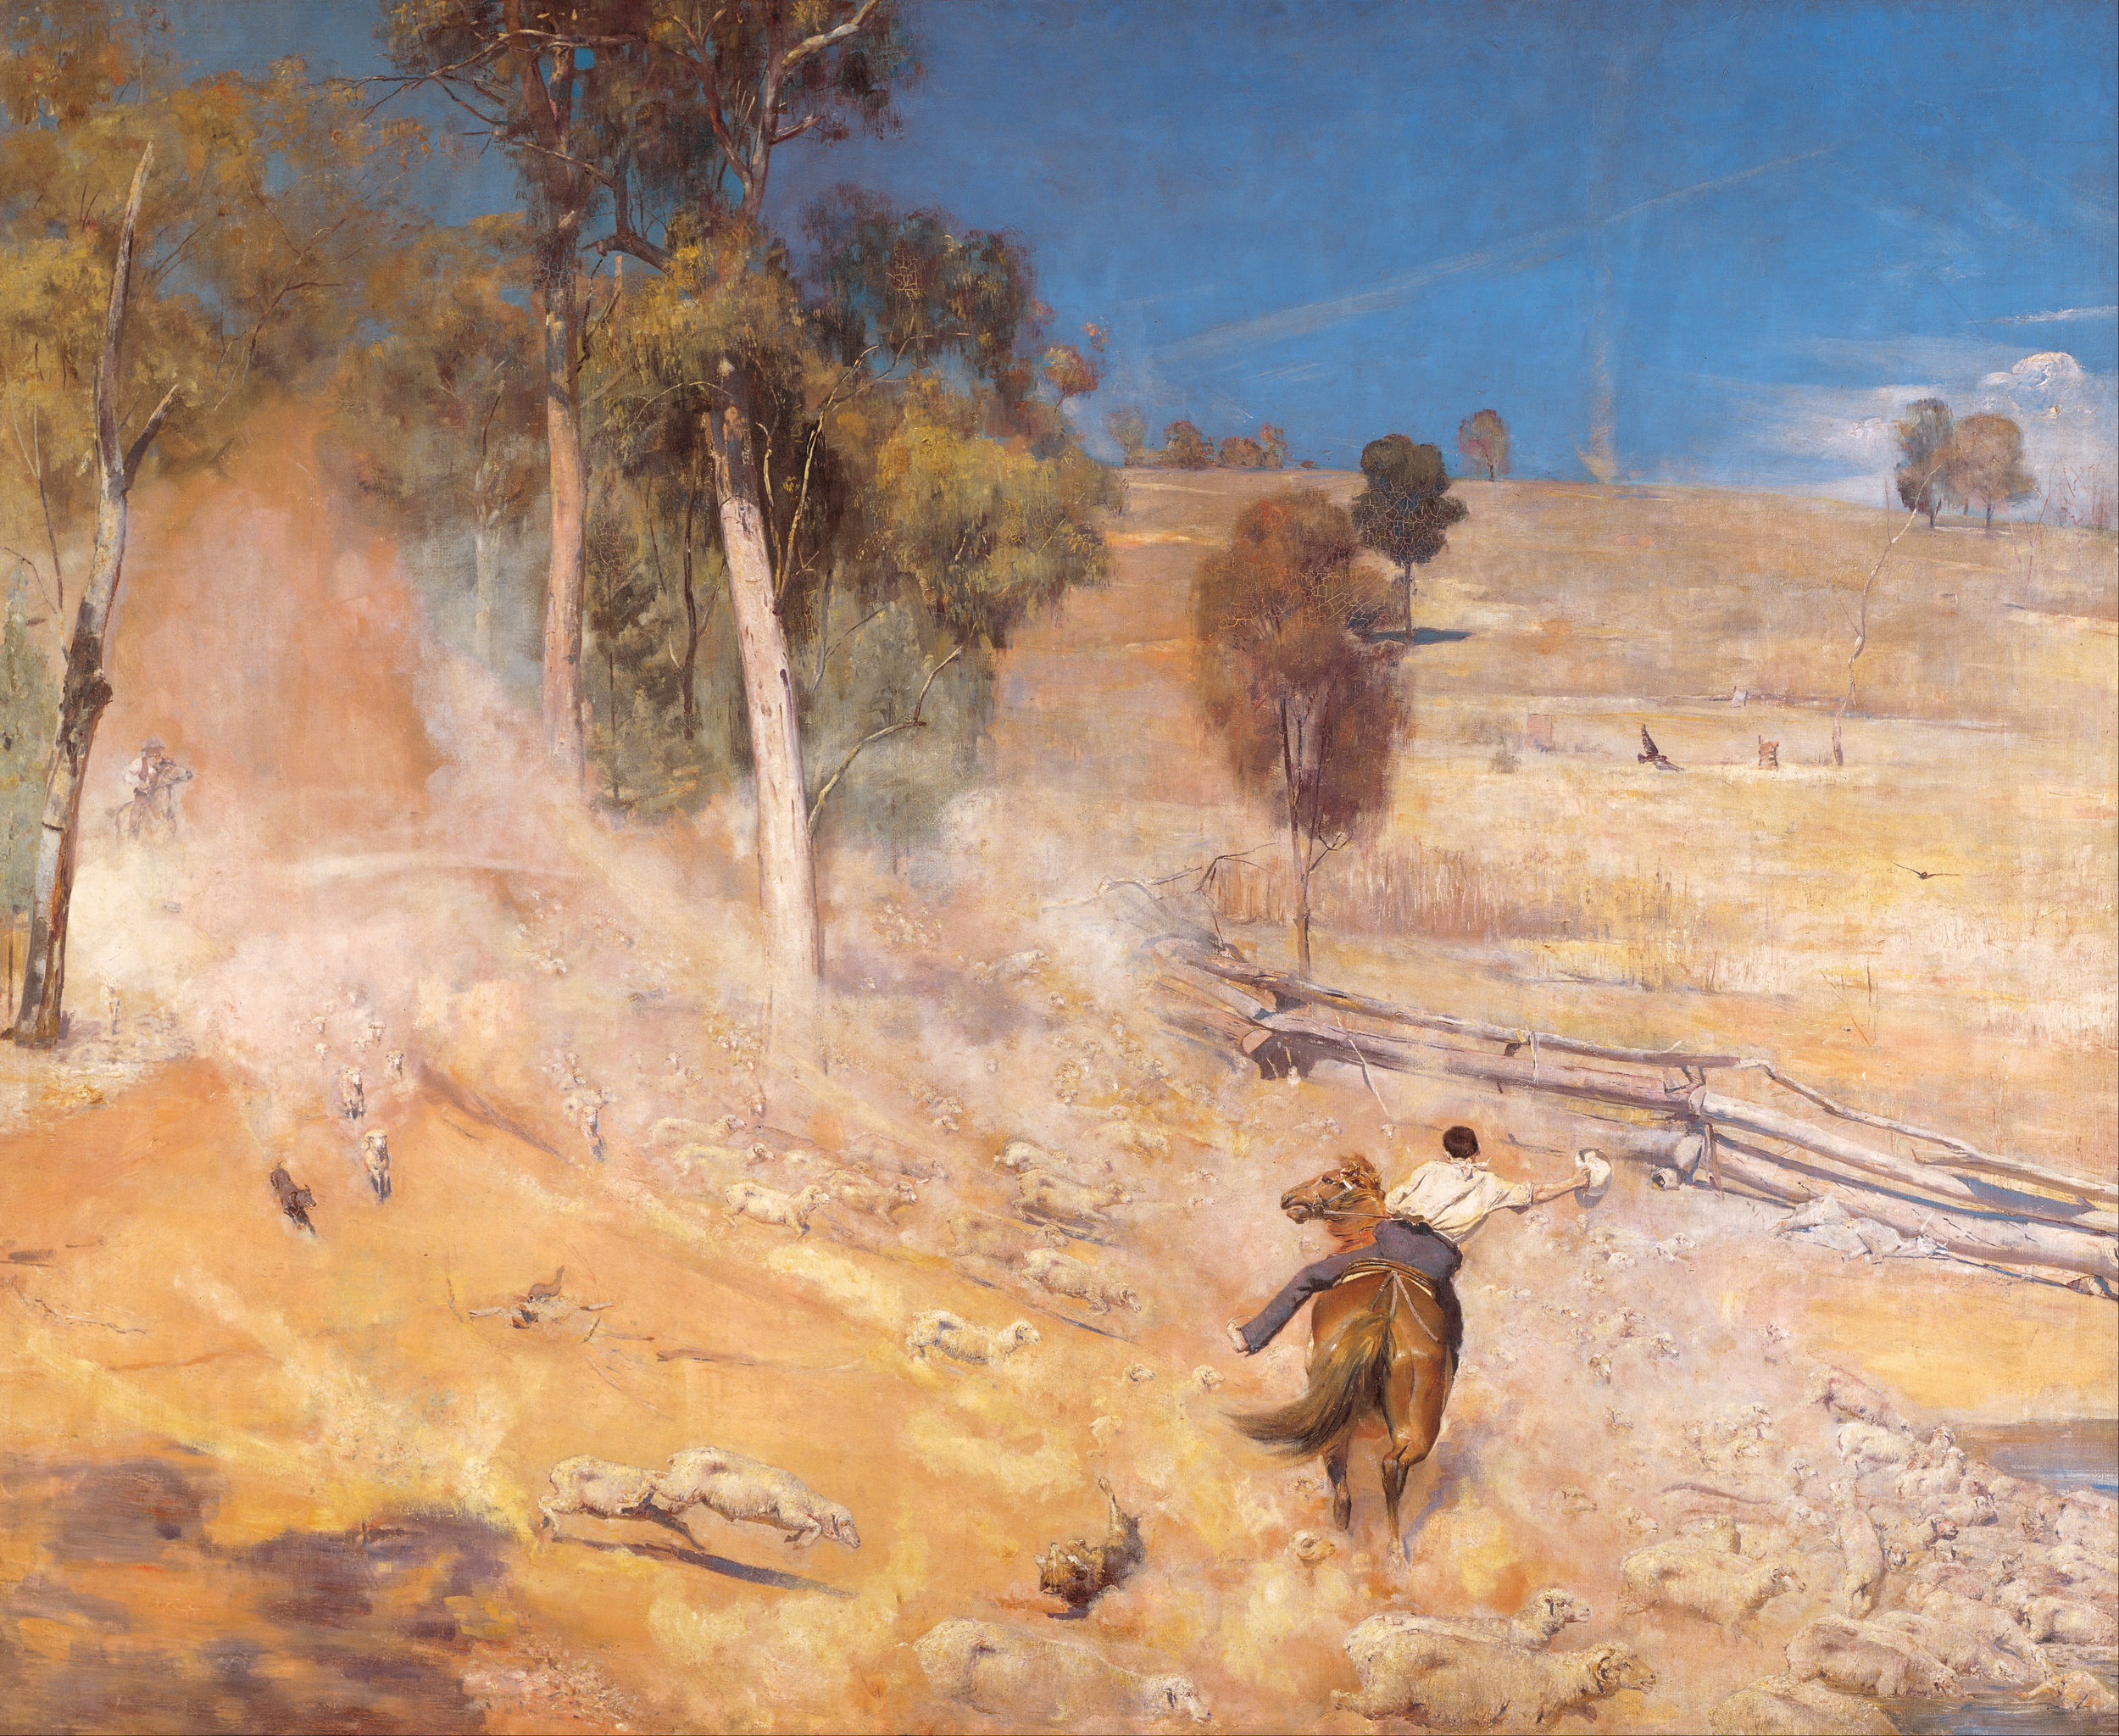 A Break Away!, Tom Roberts, 1891. Photograph: © Art Gallery of South Australia, Adelaide